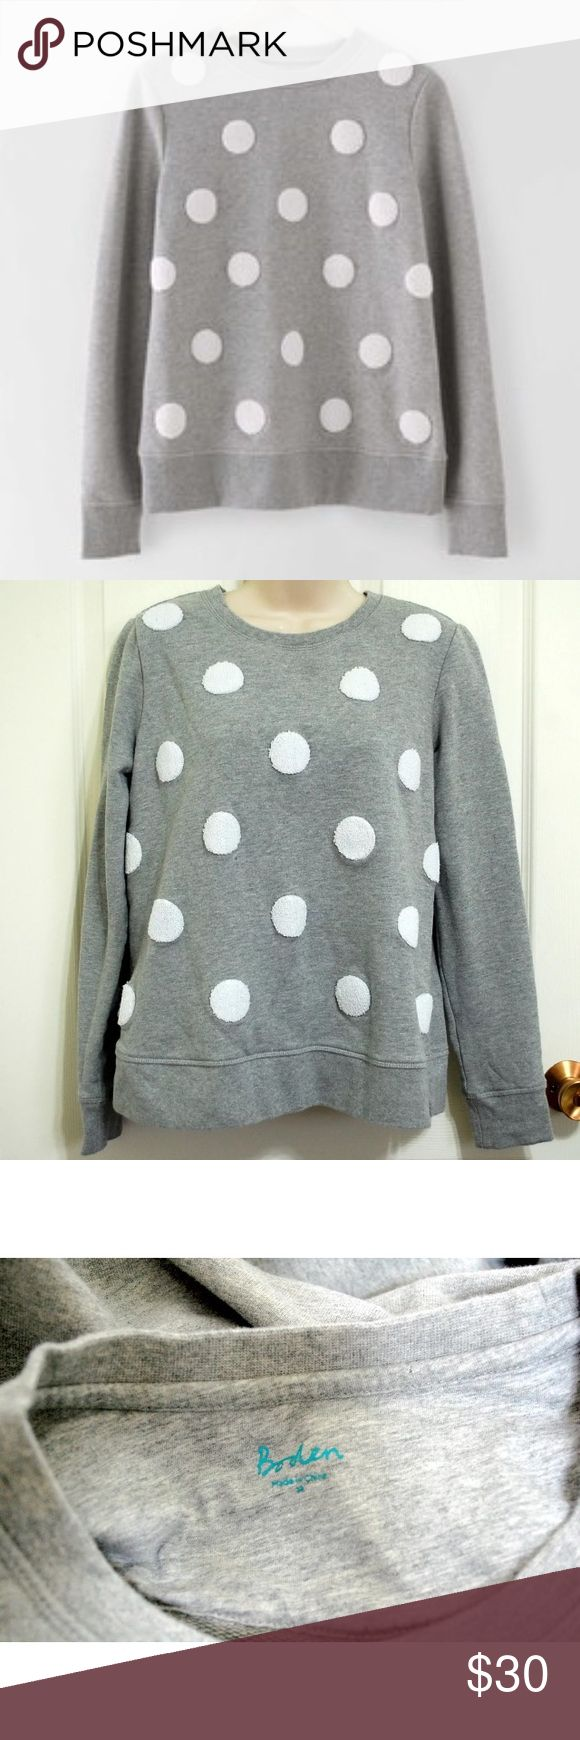 "Boden Embroidered spot dot sweatshirt Boden Polka Dot Sweatshirt  Color:  Grey/Ivory Sleeve:Long Sleeve Embellishment: Textured polka dots Size: M Shell & Lining: 100% Cotton Trim: 98% Cotton, 2% Spandex Embroidery: 100% Polyester Machine Wash Gently used condition. No stains or tears.   Length- 23""  Underarm to underarm doubled, laid flat-39""  Sleeve Length-23.5"" Boden Tops Sweatshirts & Hoodies"